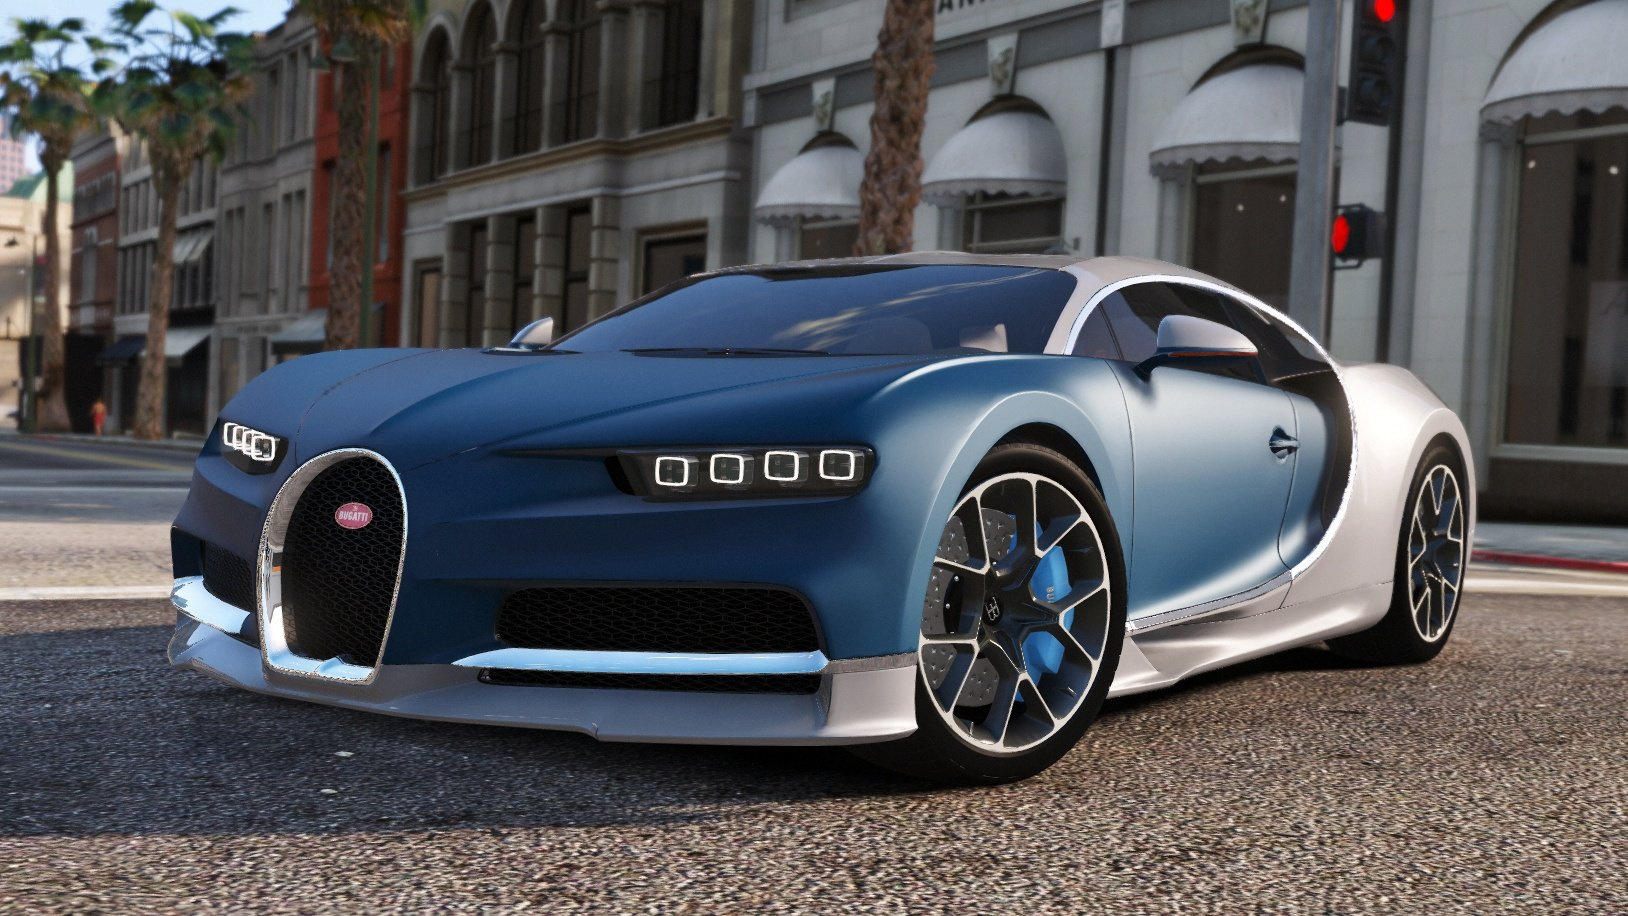 Bugatti Chiron Amp Vision Tuning Add On Gta5 Mods Com